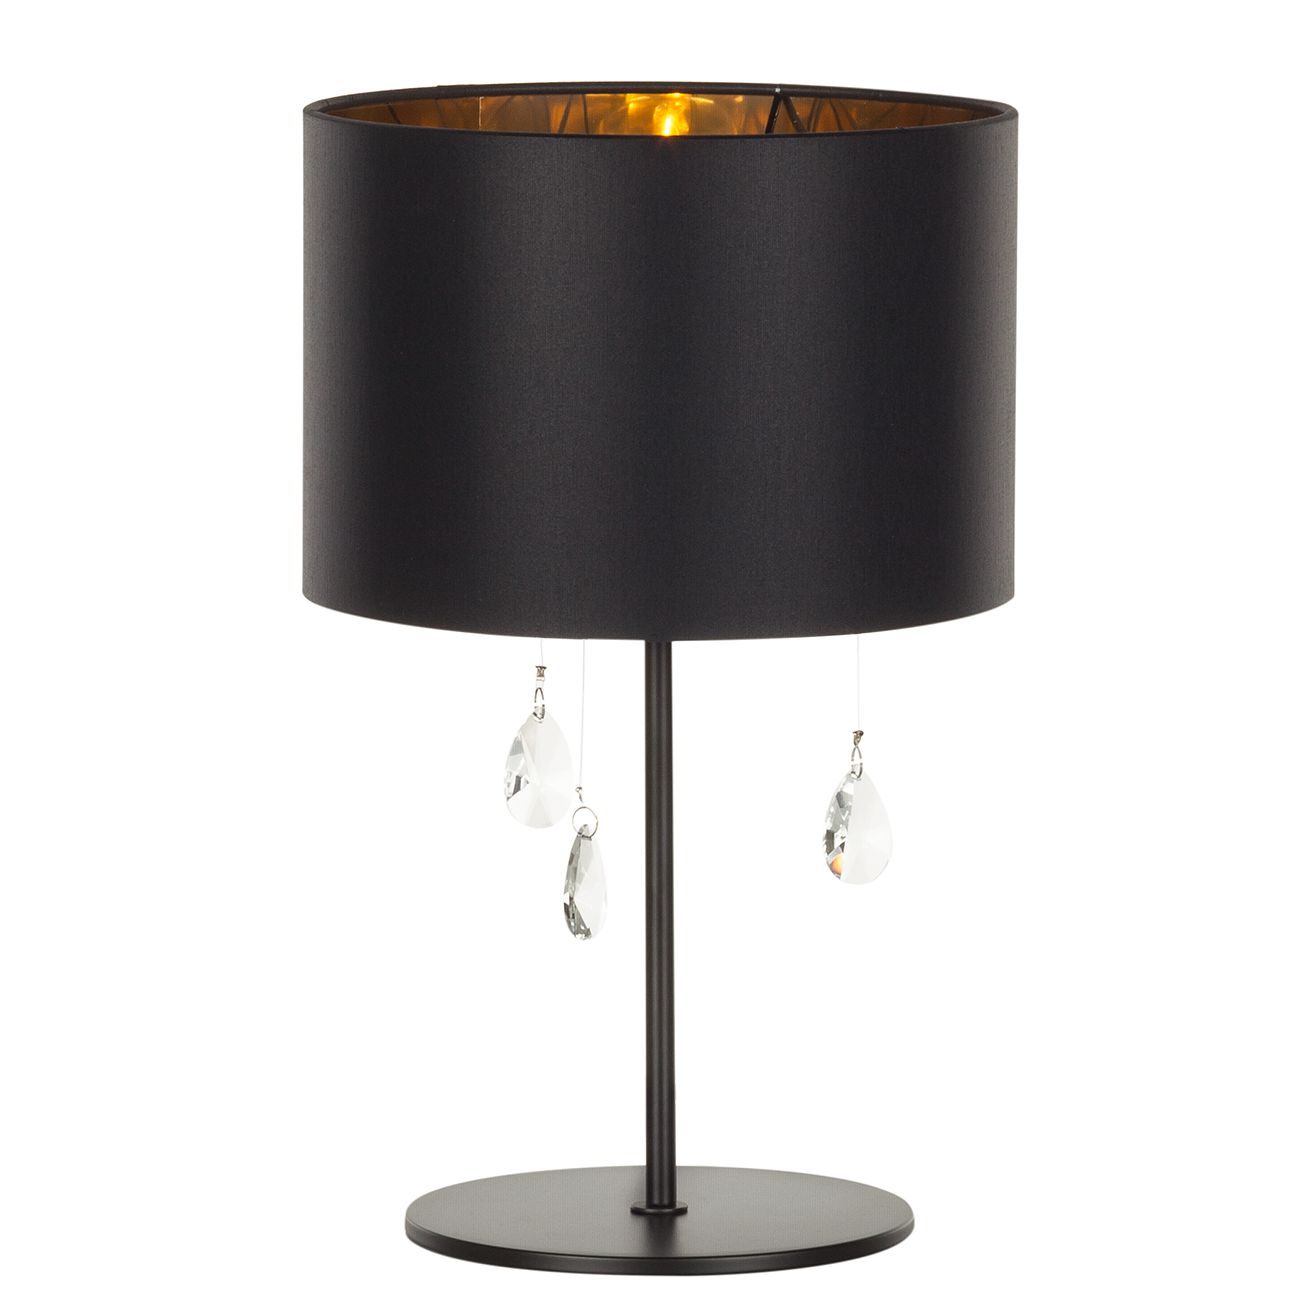 Tischleuchte Grace by Lampadina ● Metall/Glas ● Gold ● 1-flammig- Lampadina A++